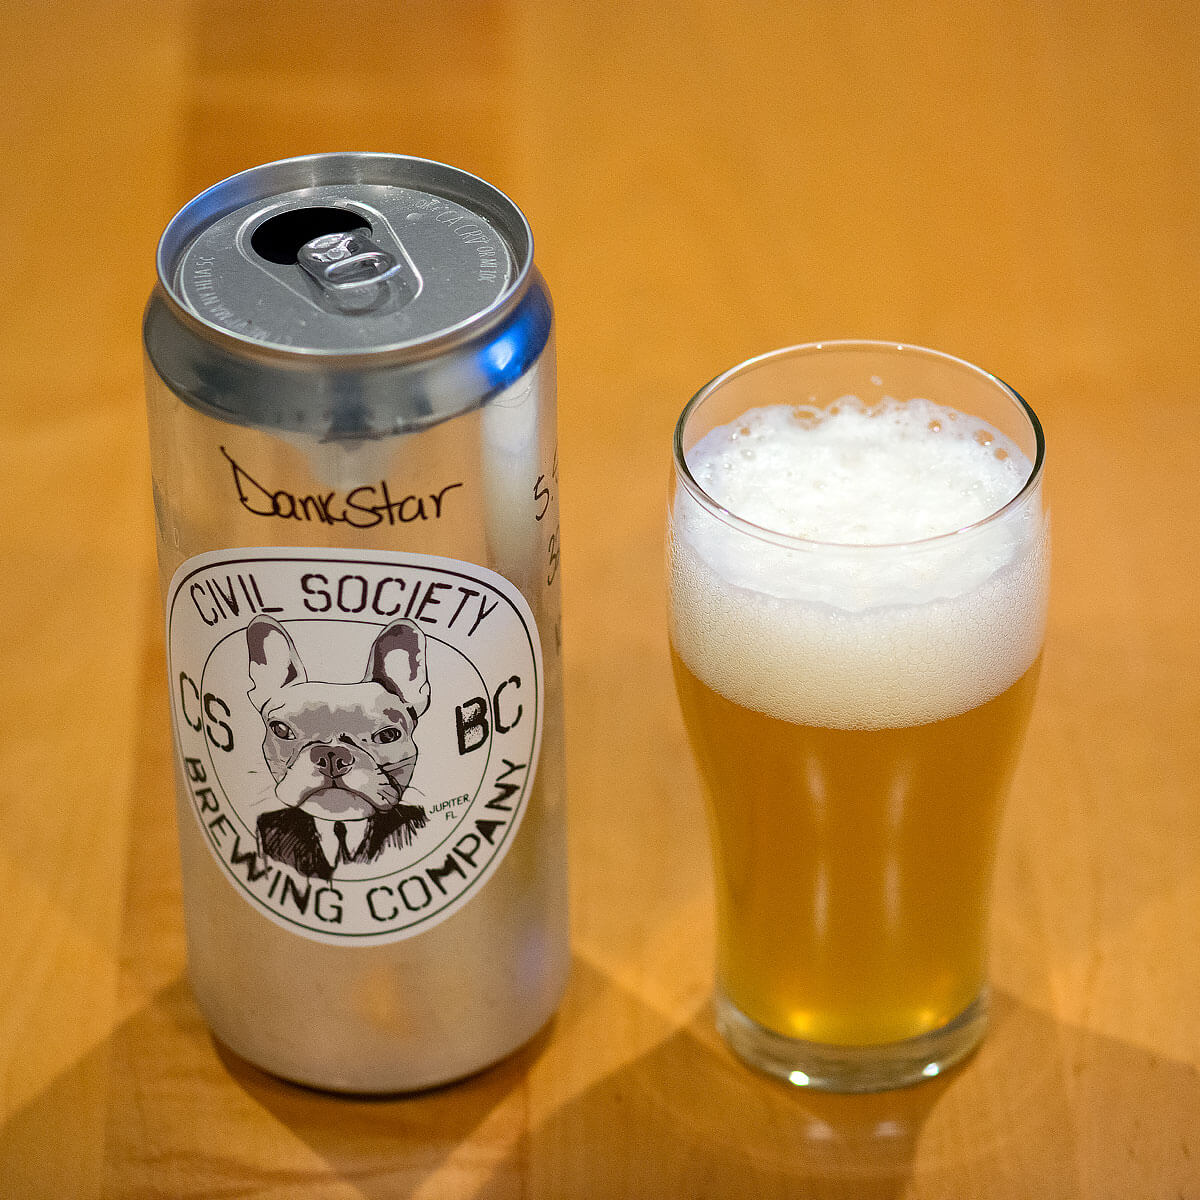 DankStar, an American Pale Ale (brewed in the New England style) by Civil Society Brewing Co.